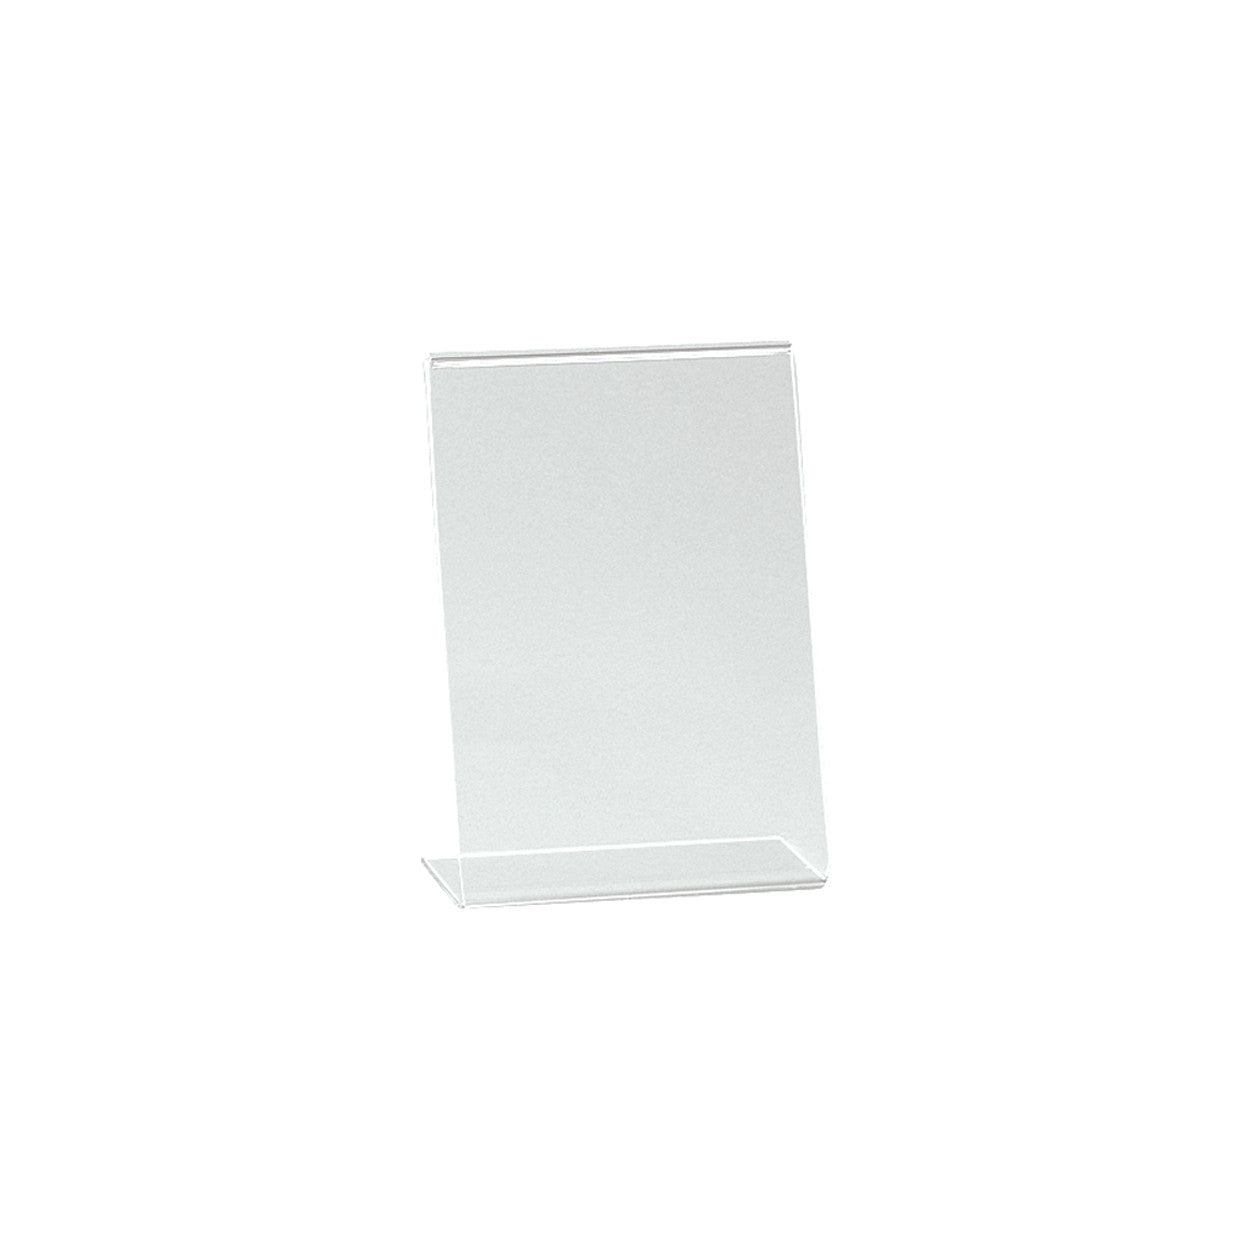 Single sided angled acrylic sign holder  A6 Portrait with 60 mm D Base T2711CA